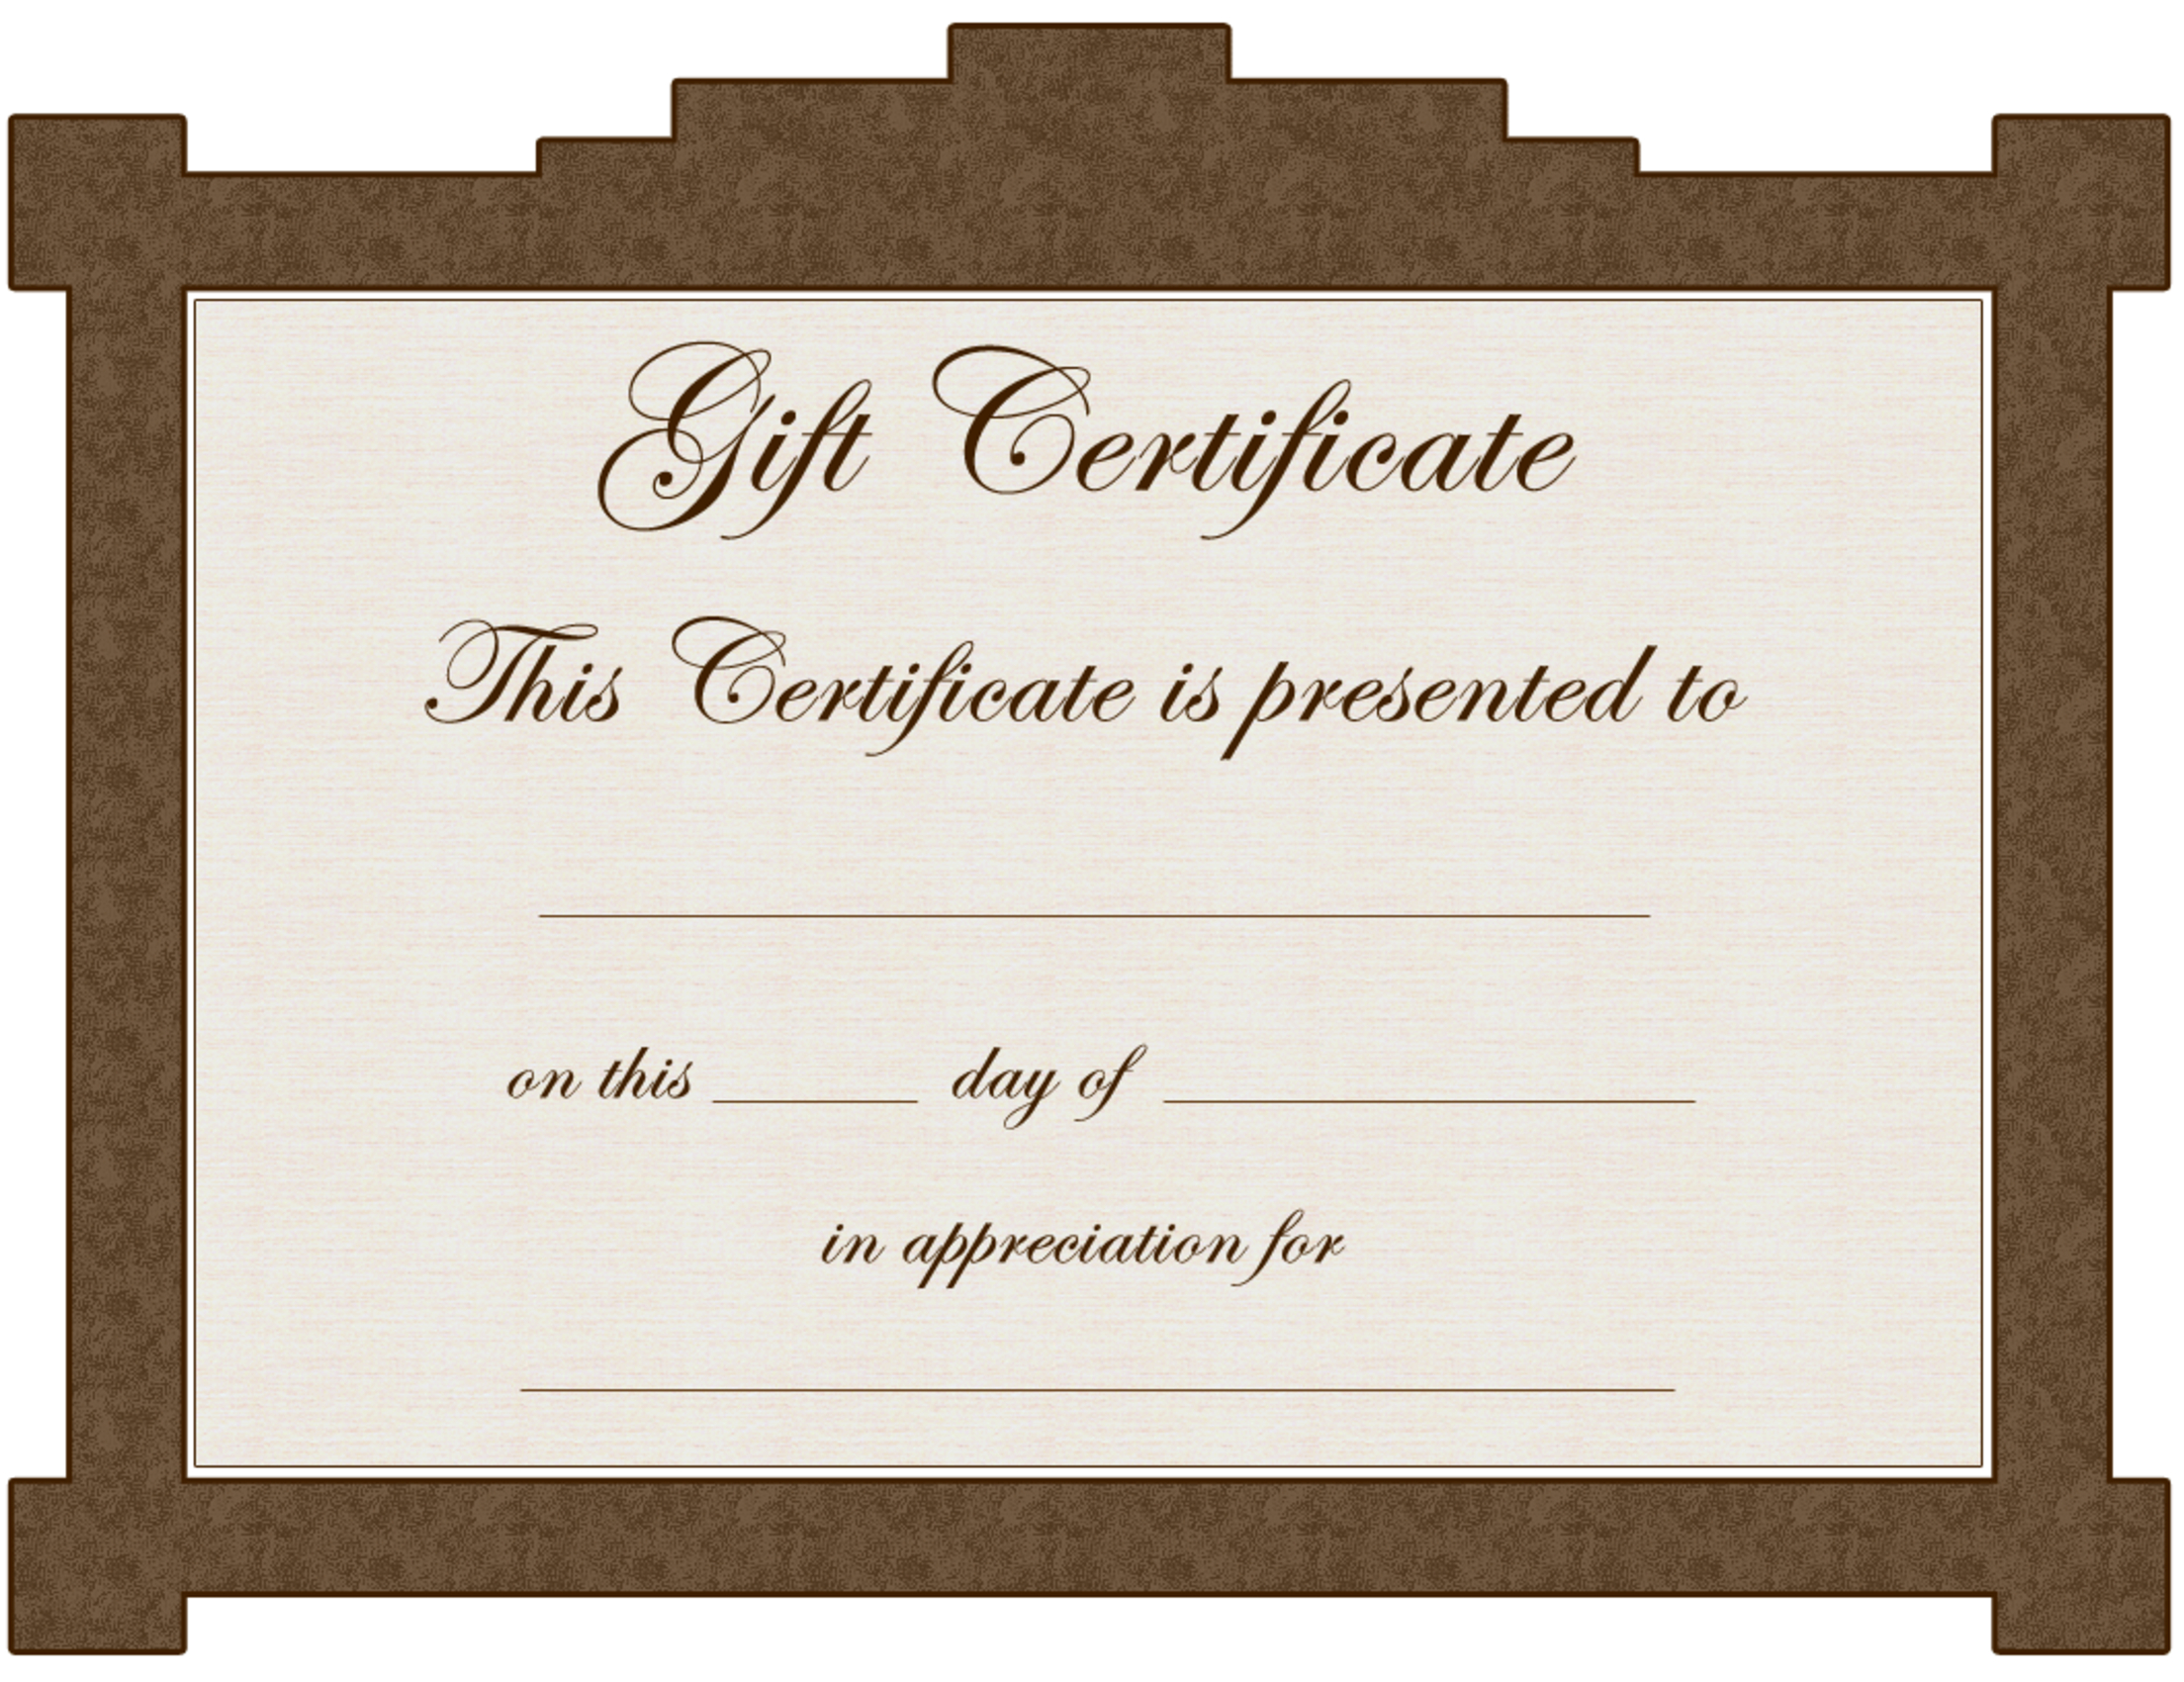 Avon Gift Certificate Template - Clip Art Library - Free Printable Tattoo Gift Certificates